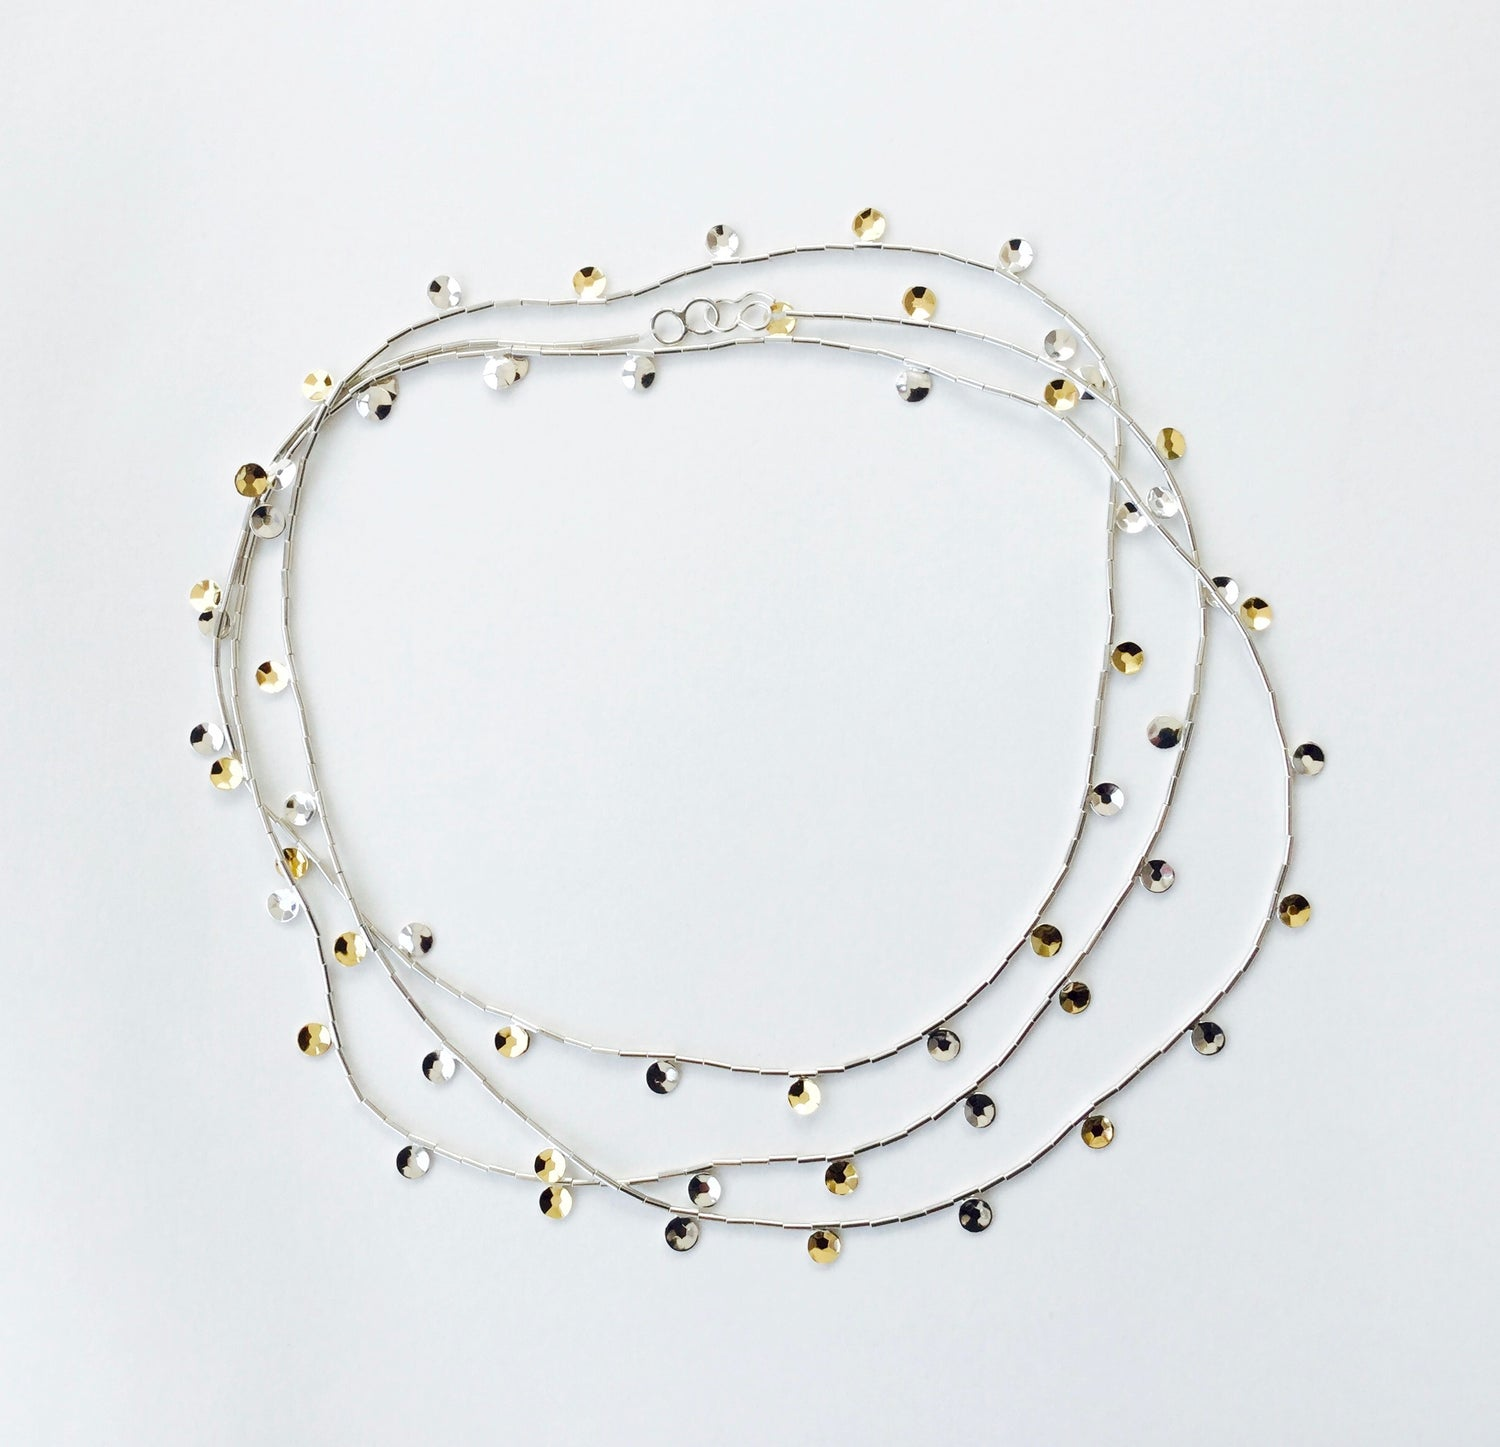 Faceted Sequin Necklace - 18ct gold/silver